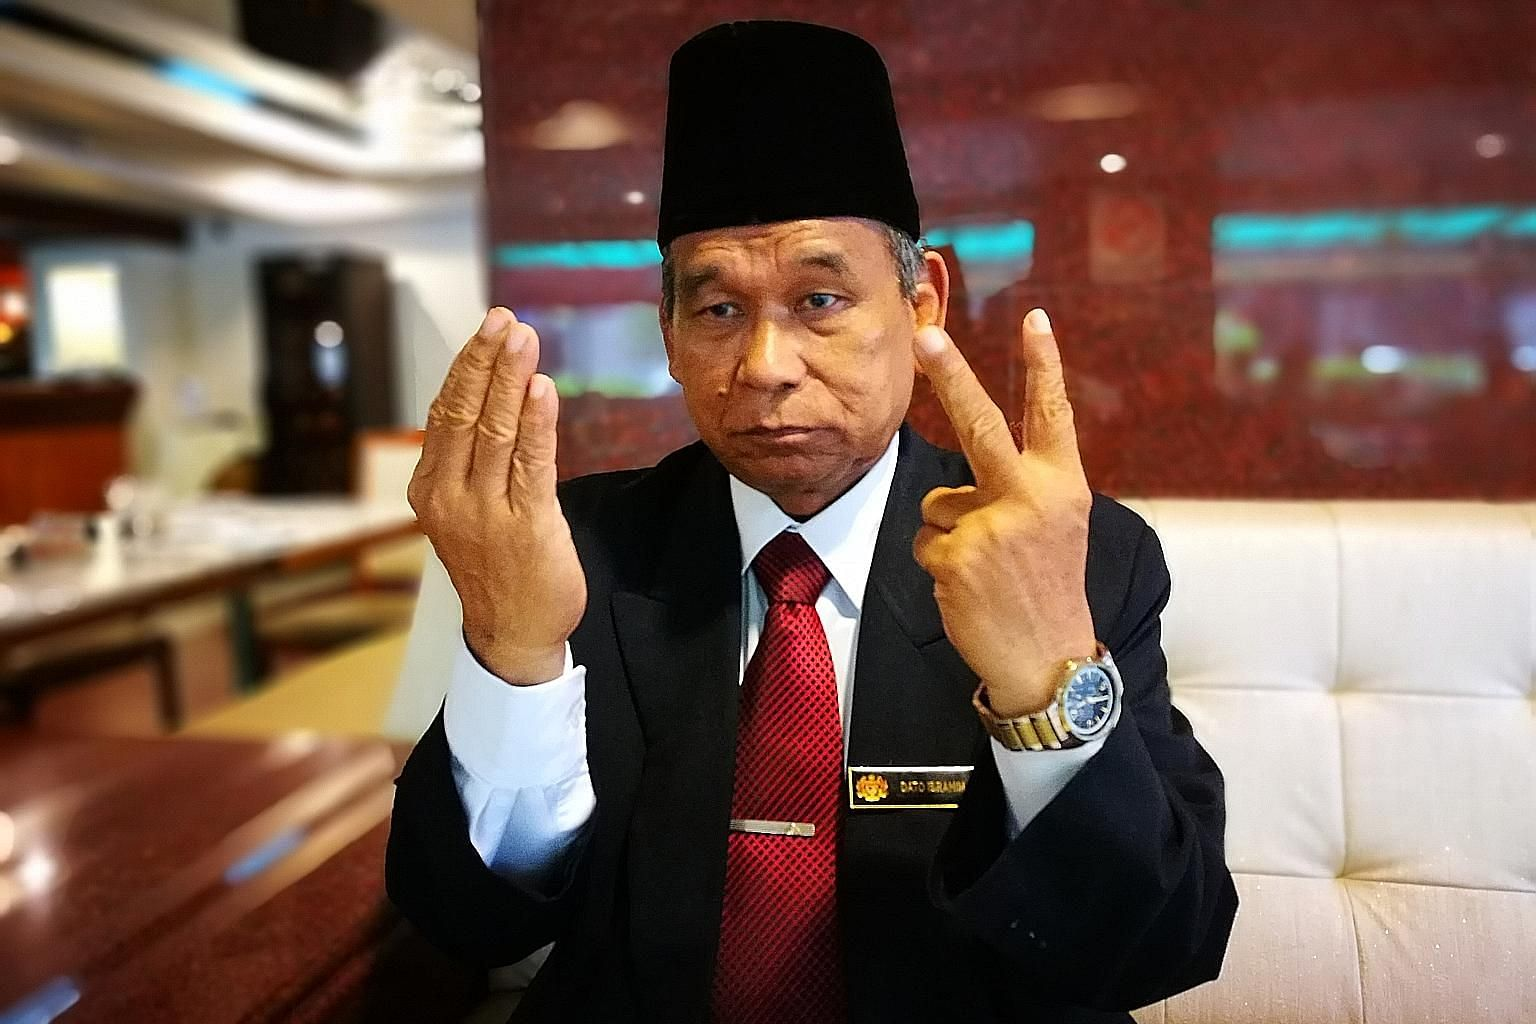 Self-styled Raja Bomoh Ibrahim Mat Zin shows how he prays for Malaysia's protection against North Korea, holding up two fingers to bless both nations.